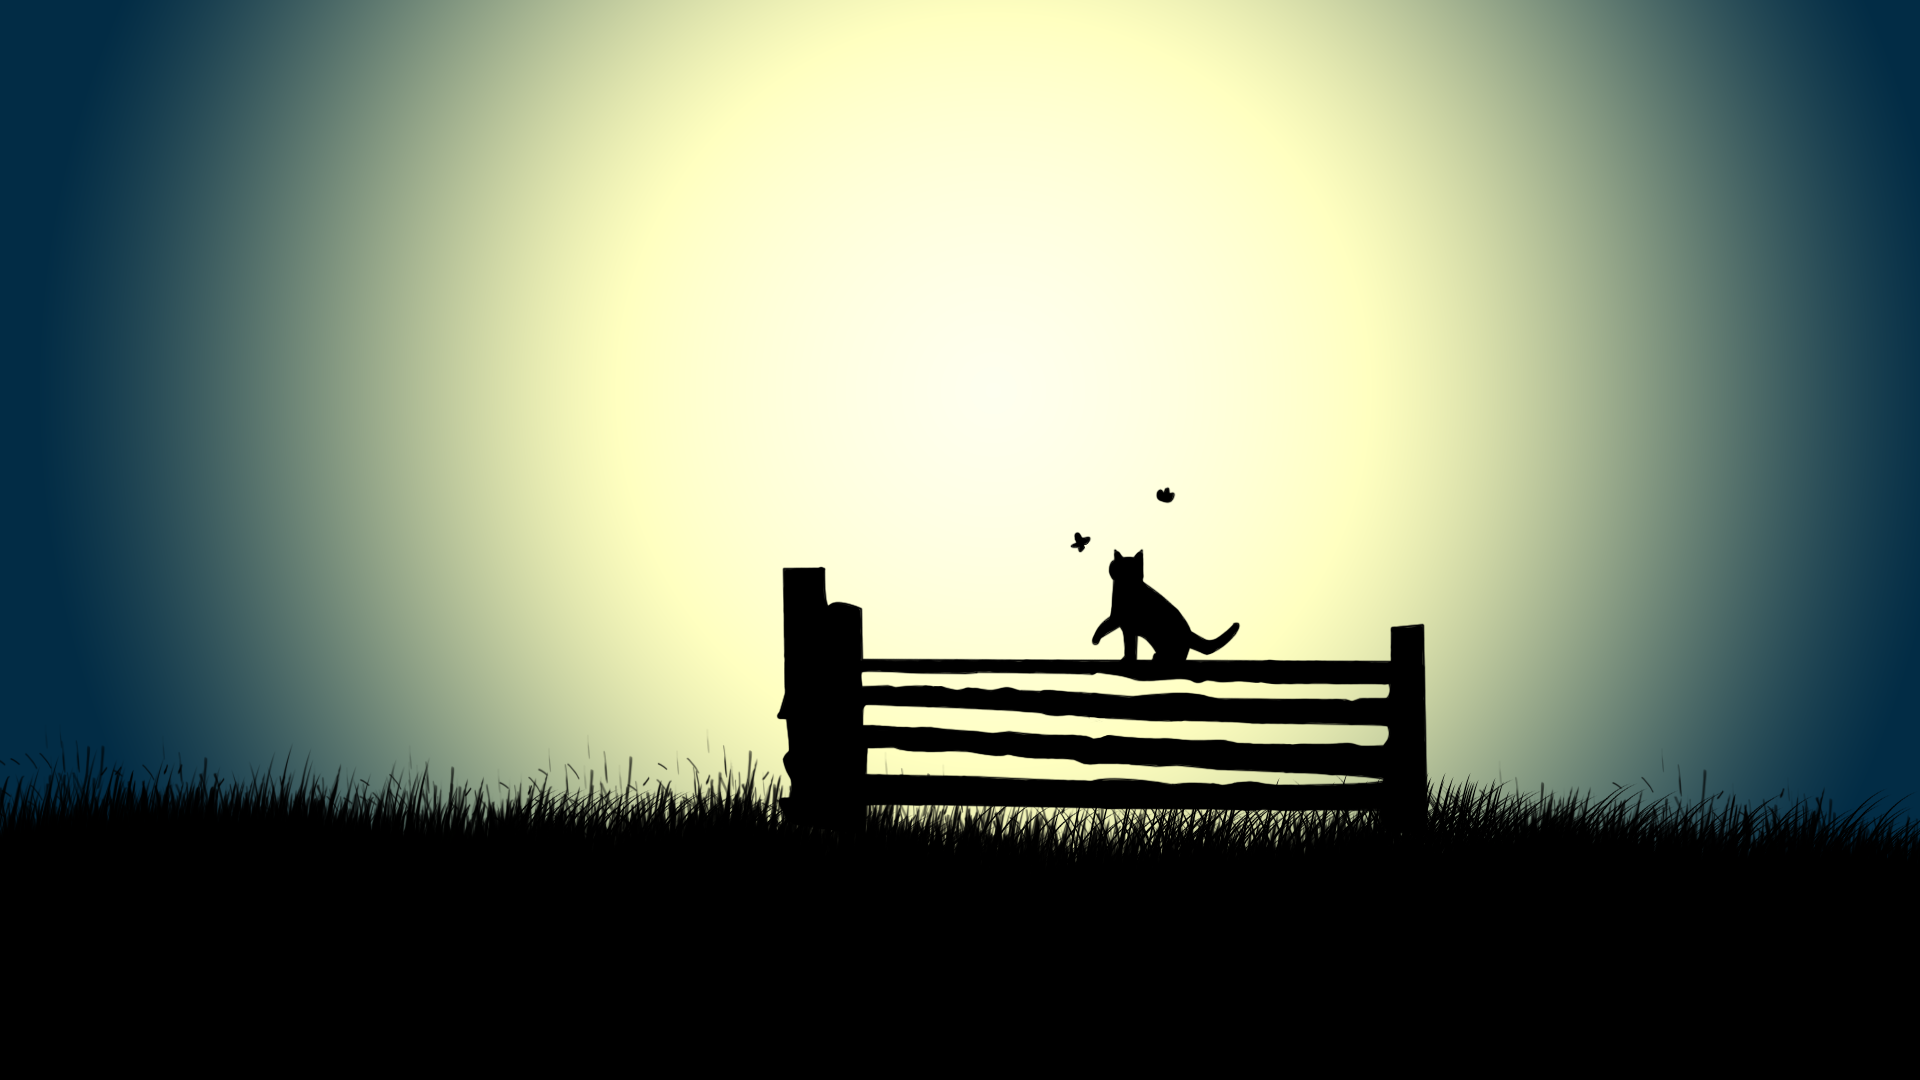 Download Cat Silhouette Wallpaper Gallery